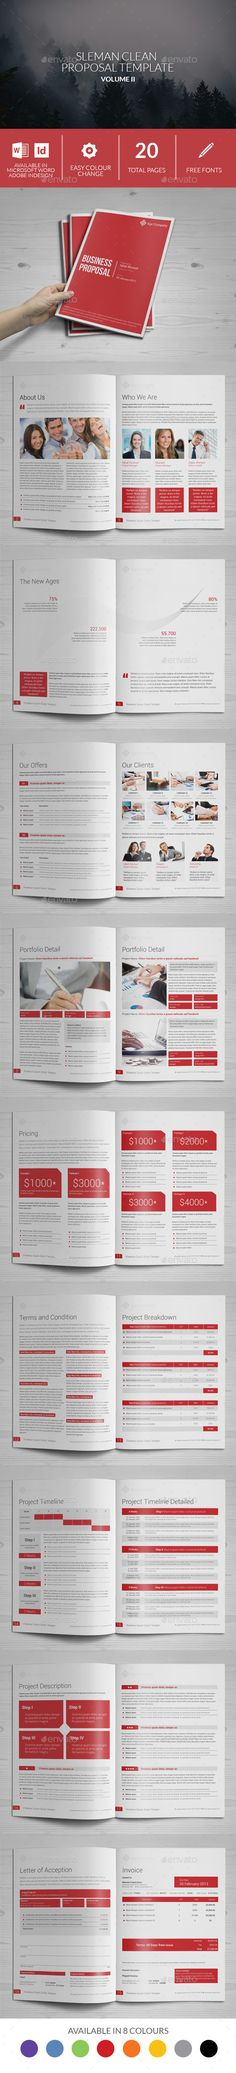 Sleman Clean Proposal Template Proposal templates, Proposals and - product sales proposal template